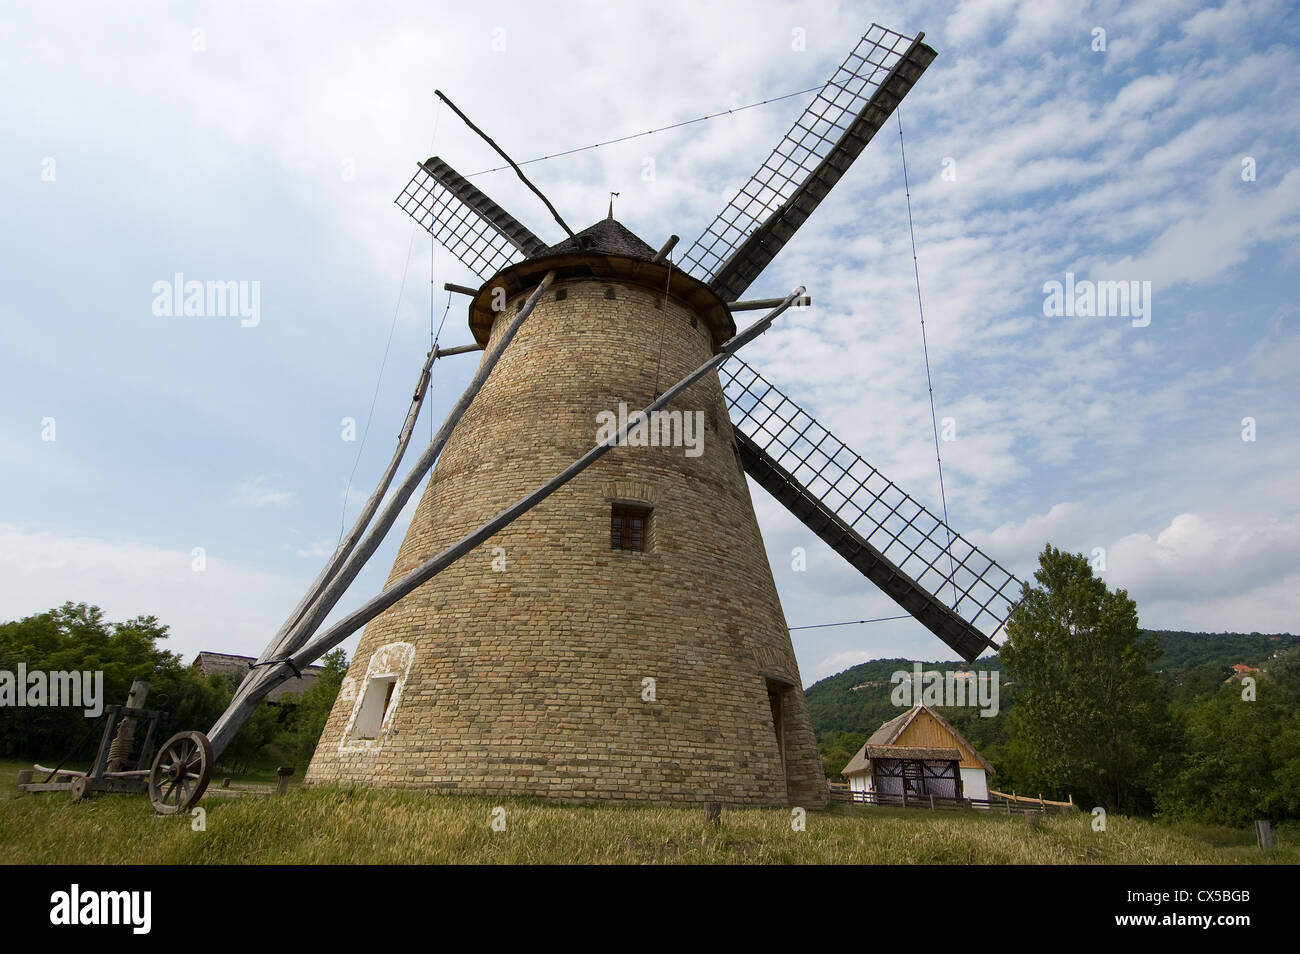 Elk190-2137 Hungary, Szentendre, Open Air Ethnographic Museum, windmill - Stock Image